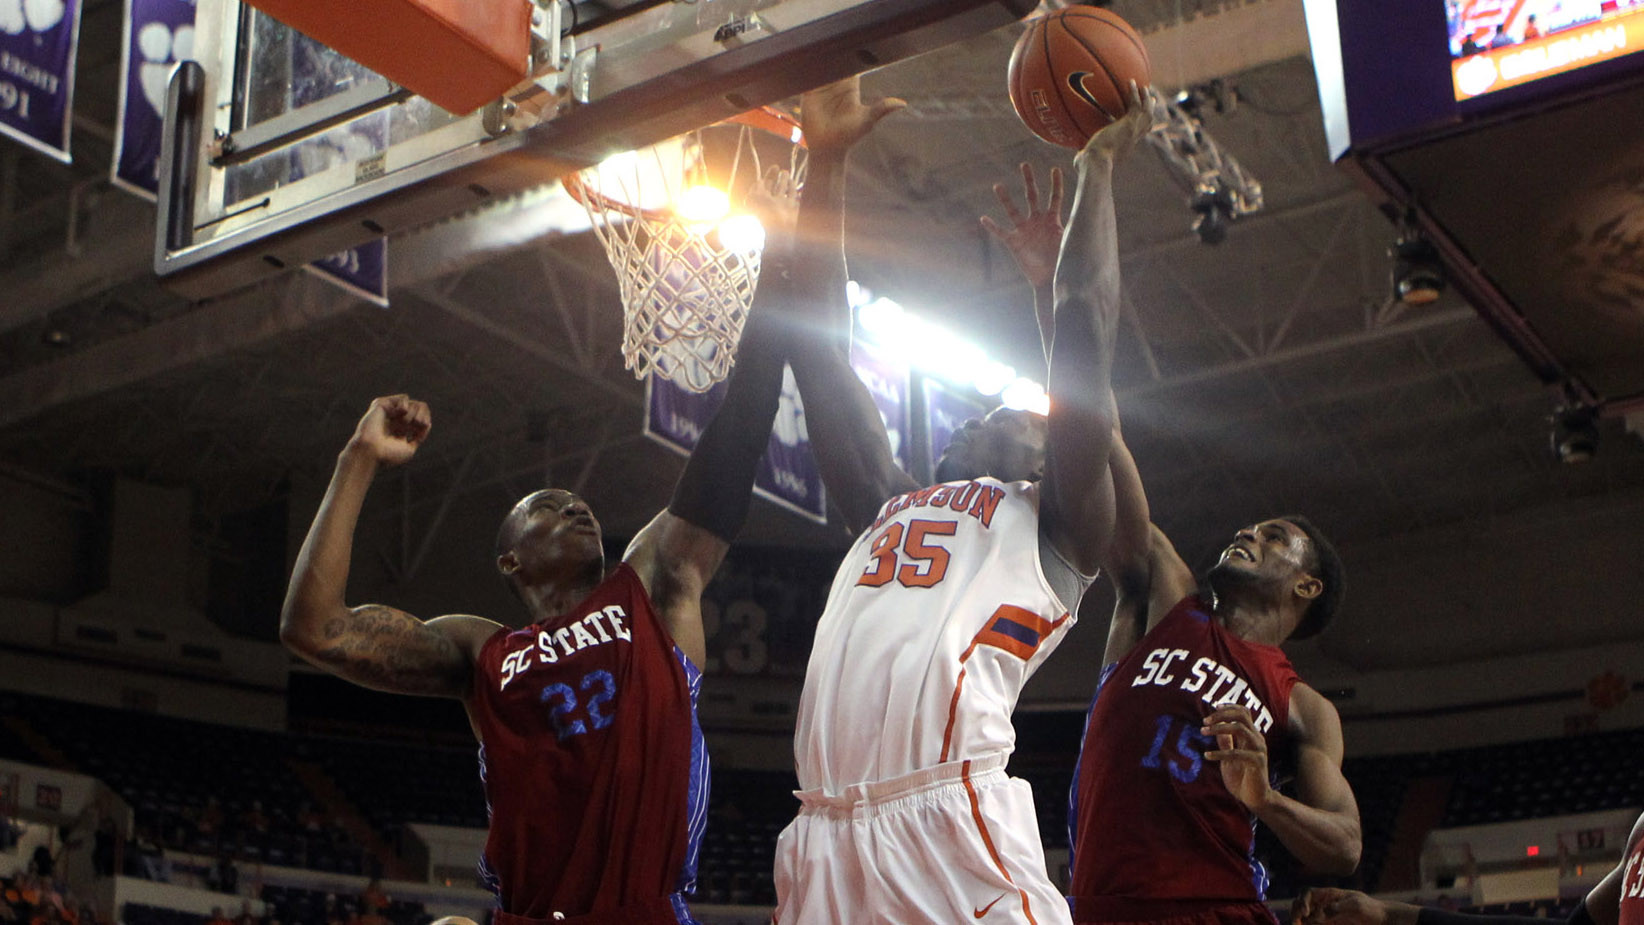 Coleman, Nnoko Propel Tigers to 65-49 Victory over SC State Tuesday